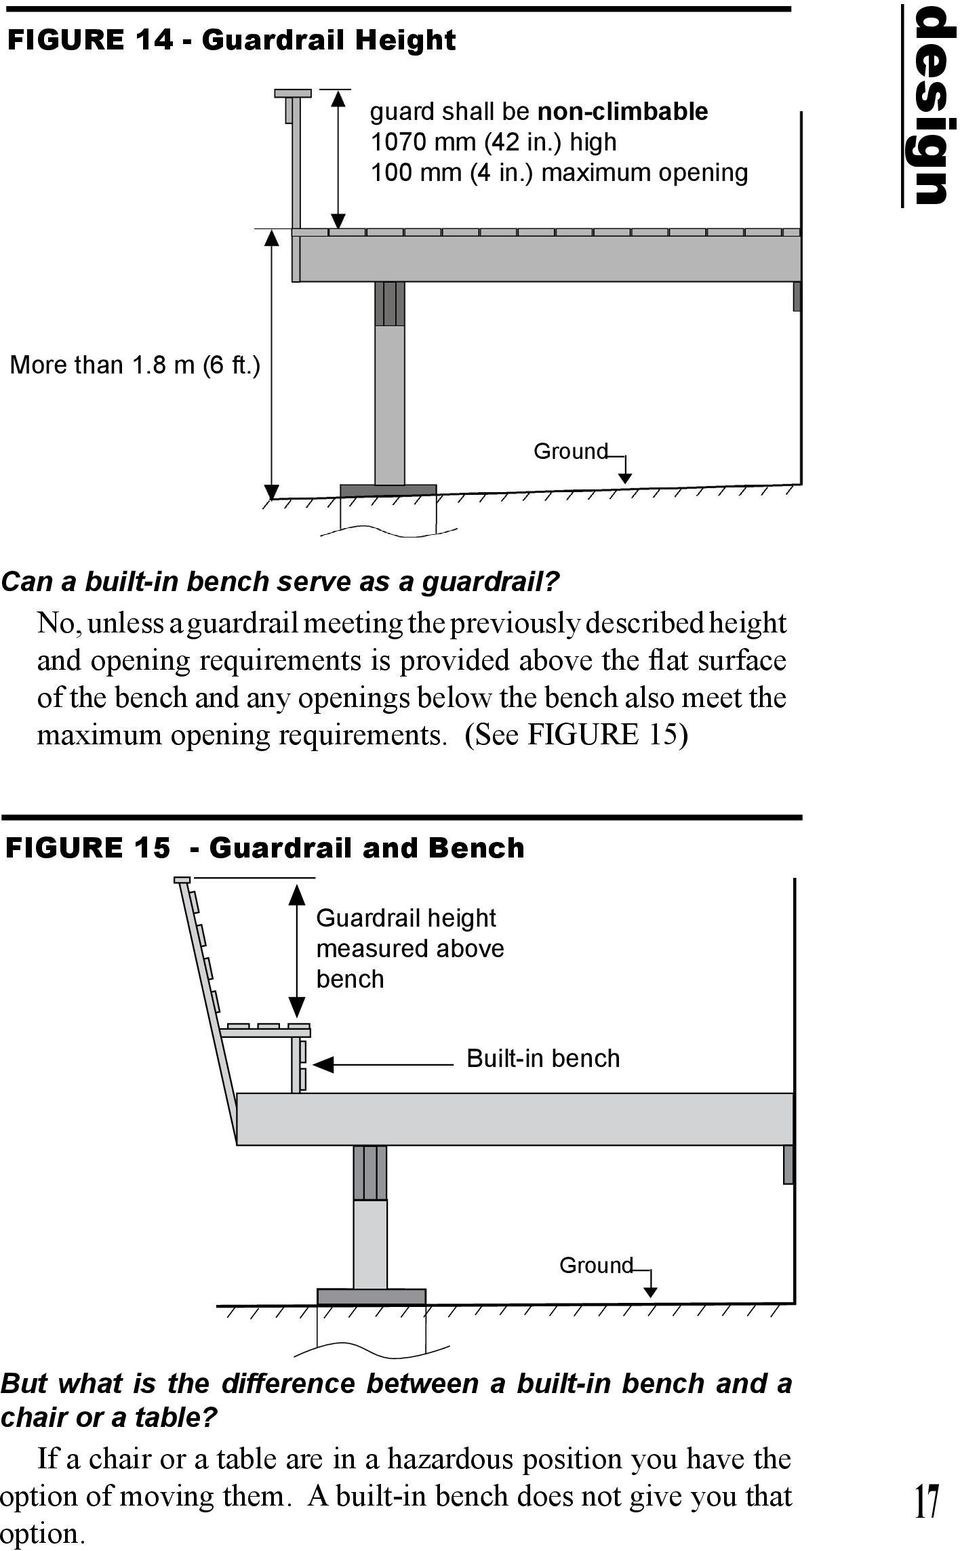 No, unless a guardrail meeting the previously described height and opening requirements is provided above the flat surface of the bench and any openings below the bench also meet